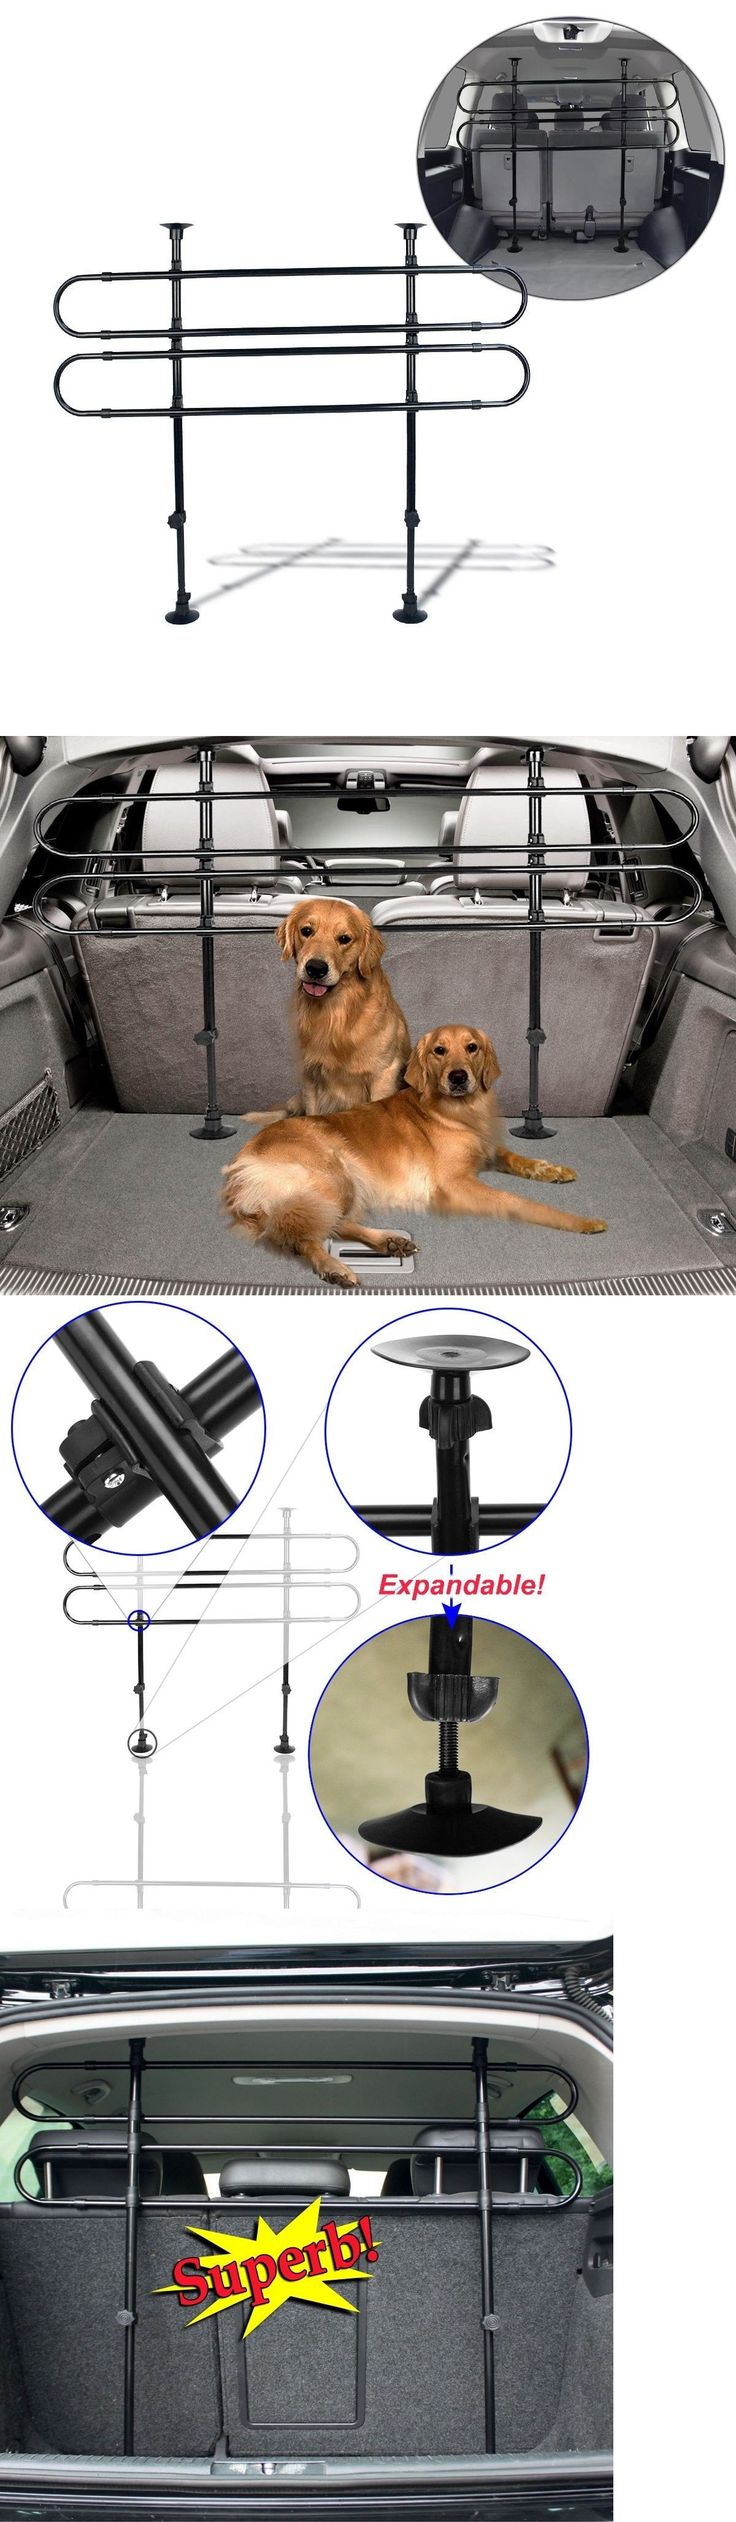 Car Seats and Barriers 46454: Pet Barrier Dog Accents Gate Pet Dog Fence Barrier Safety Walk Thru Adjustable -> BUY IT NOW ONLY: $32.8 on eBay!